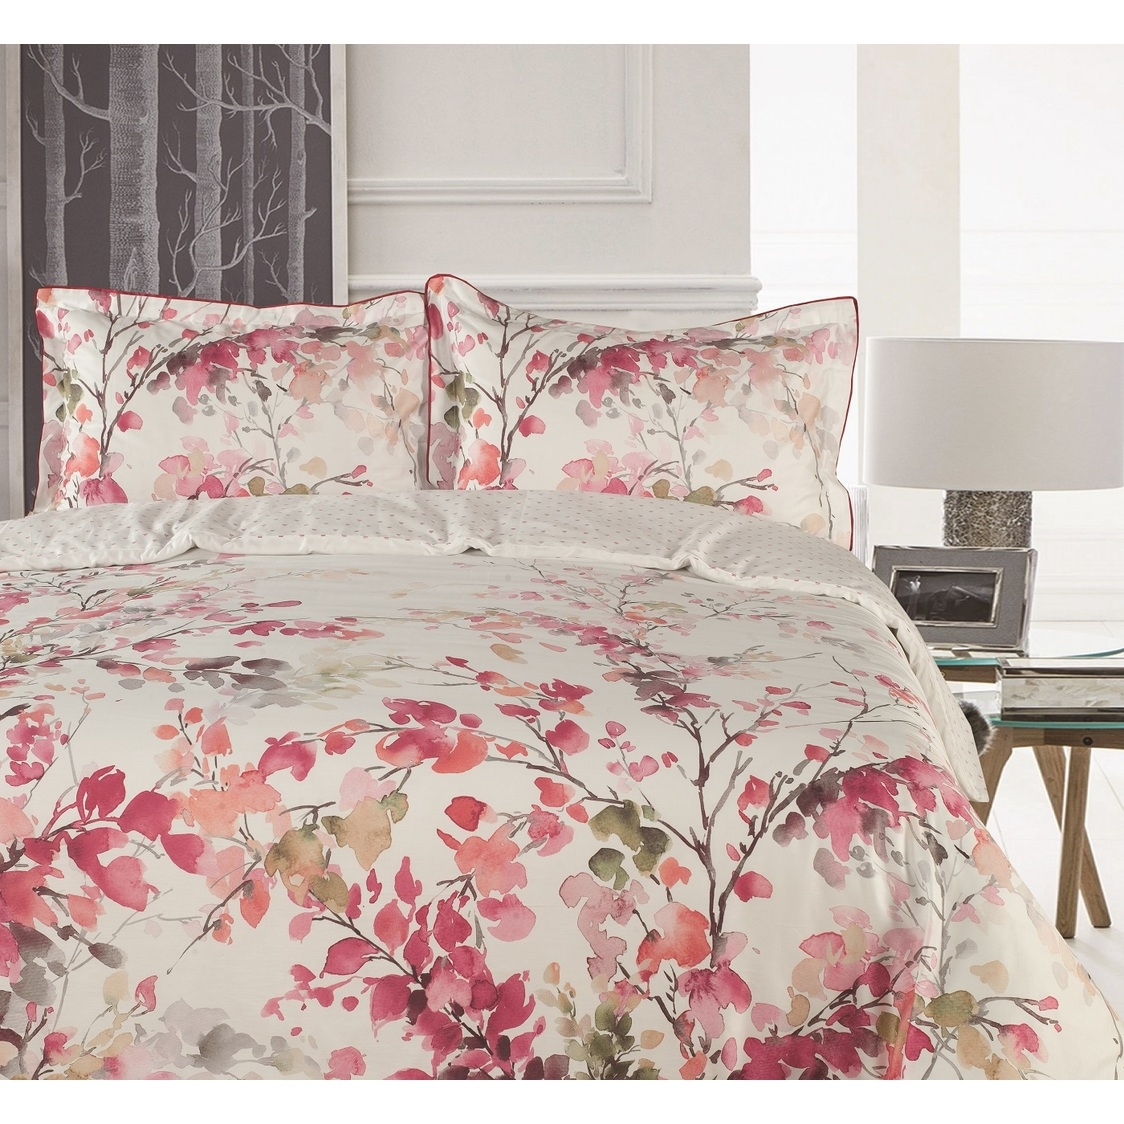 Heirloom Bed Set